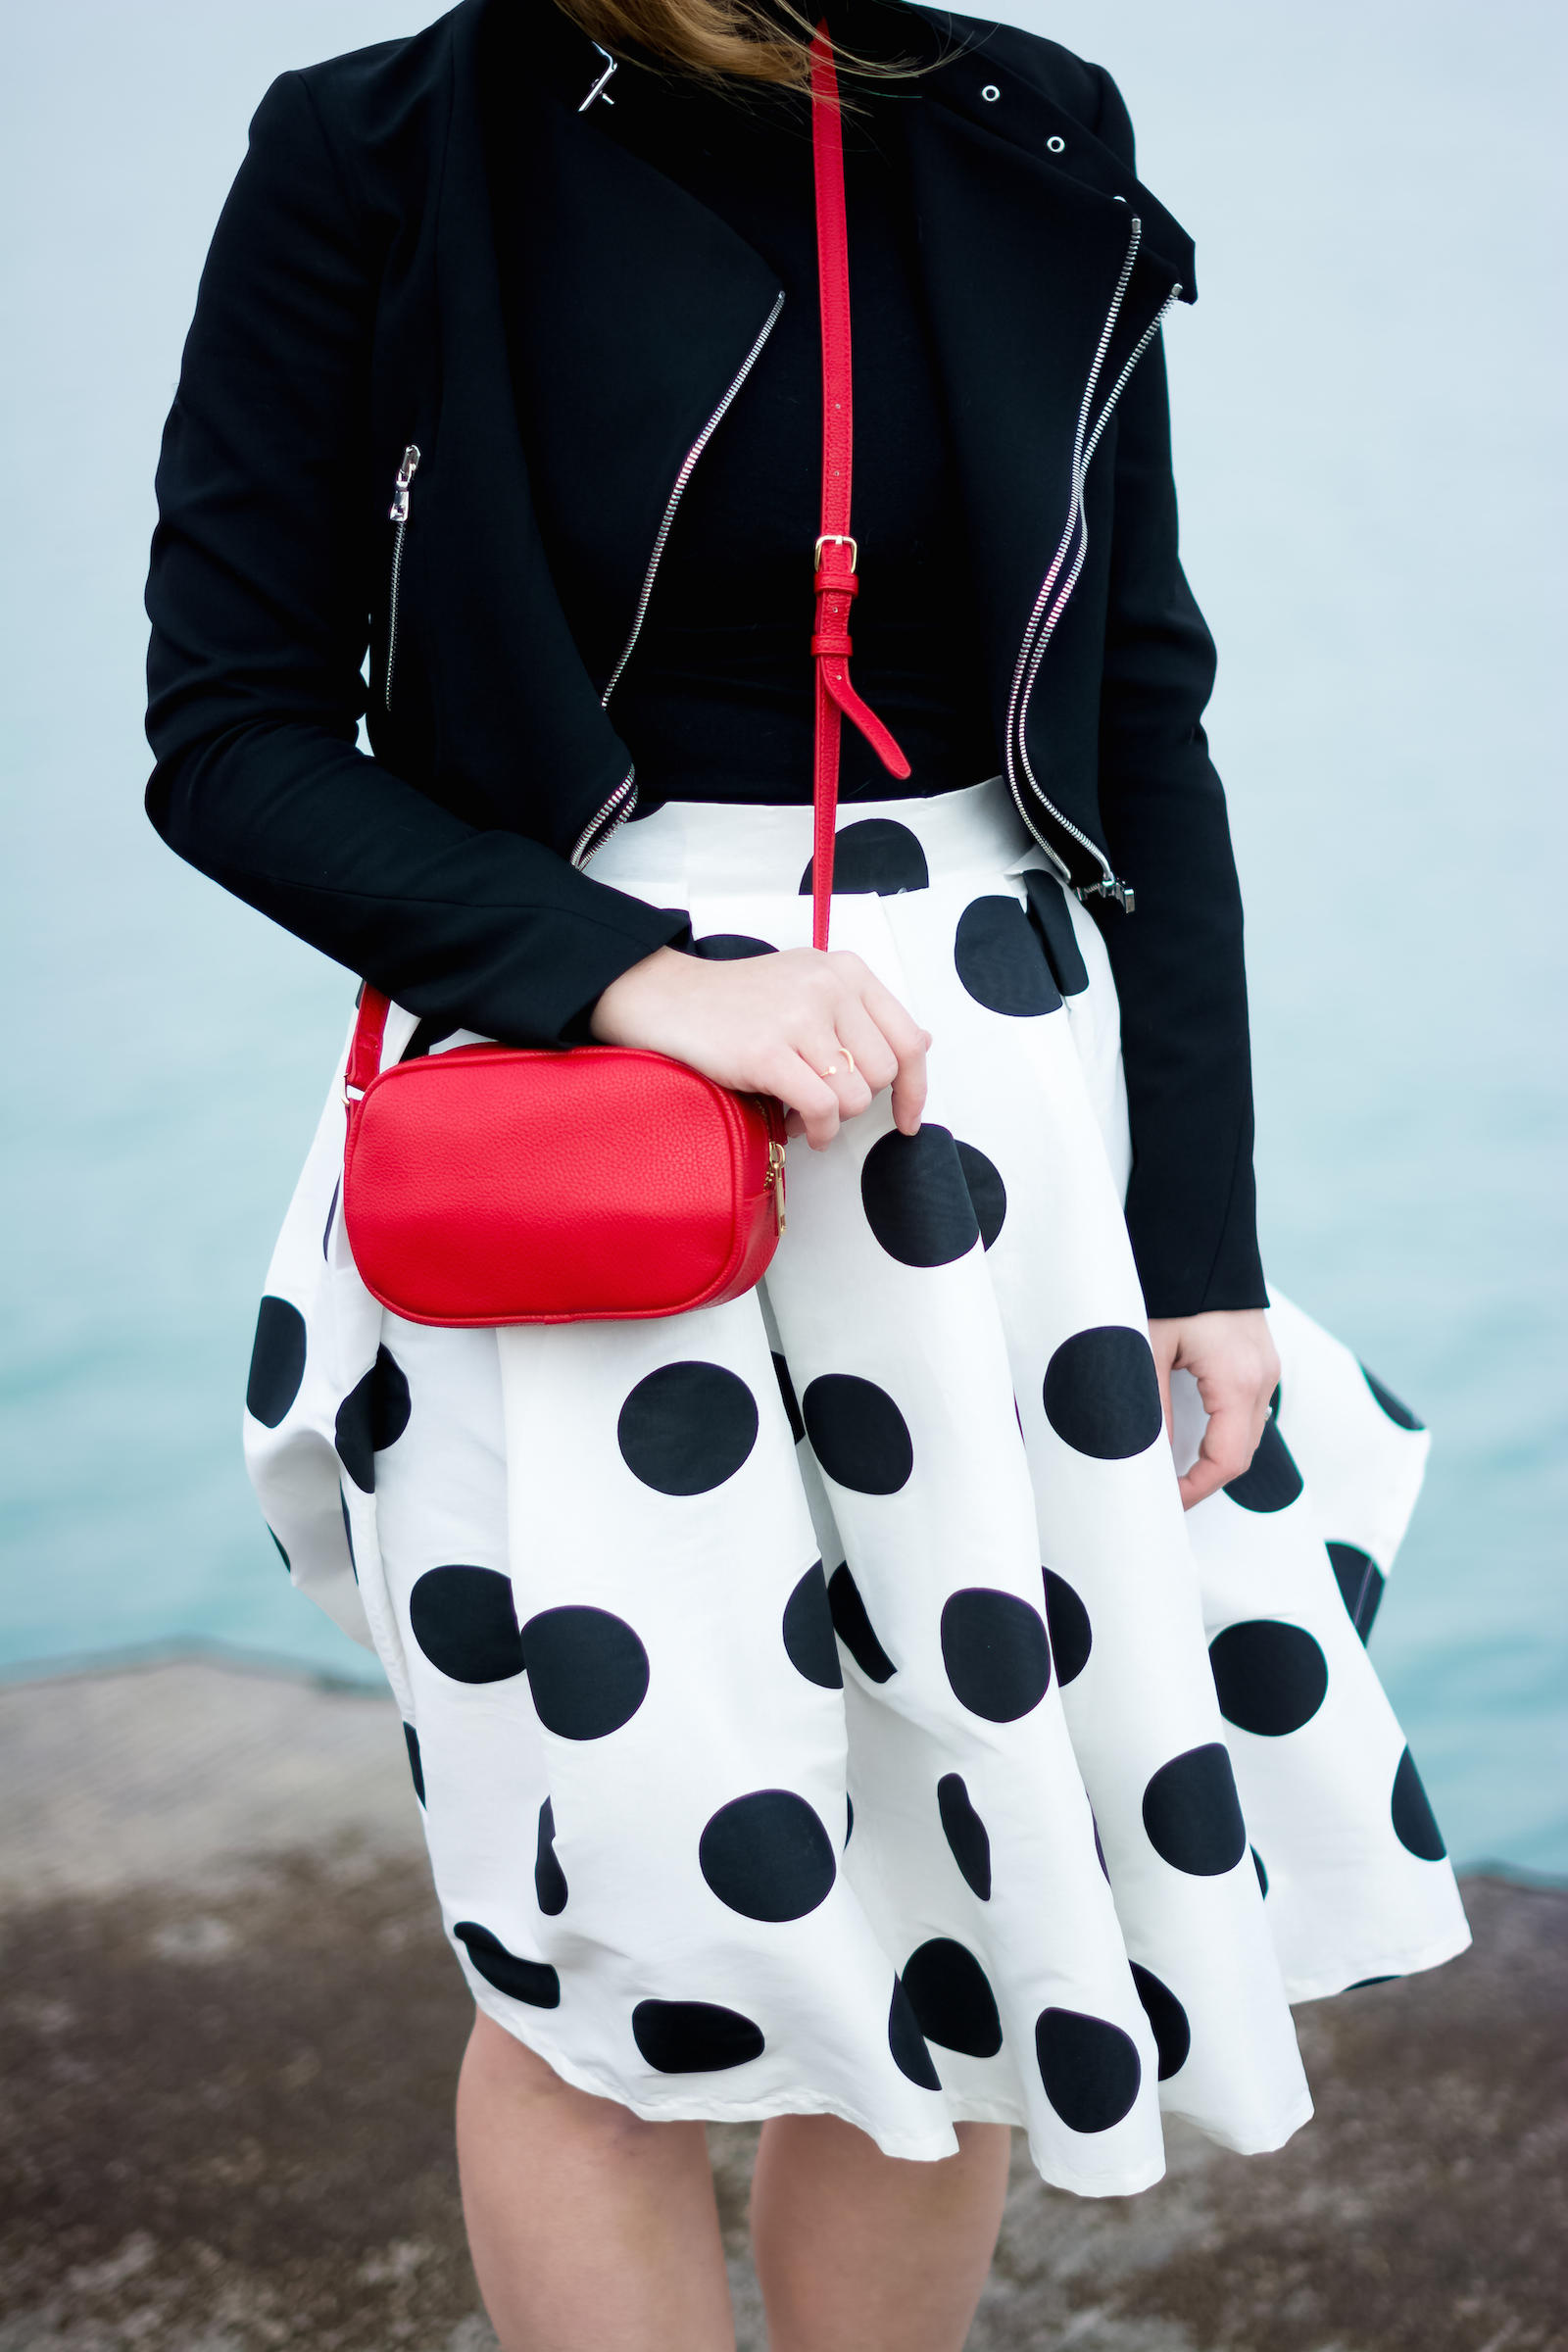 Zara Moto Jacket T&J Designs Polka Dot Midi Skirt